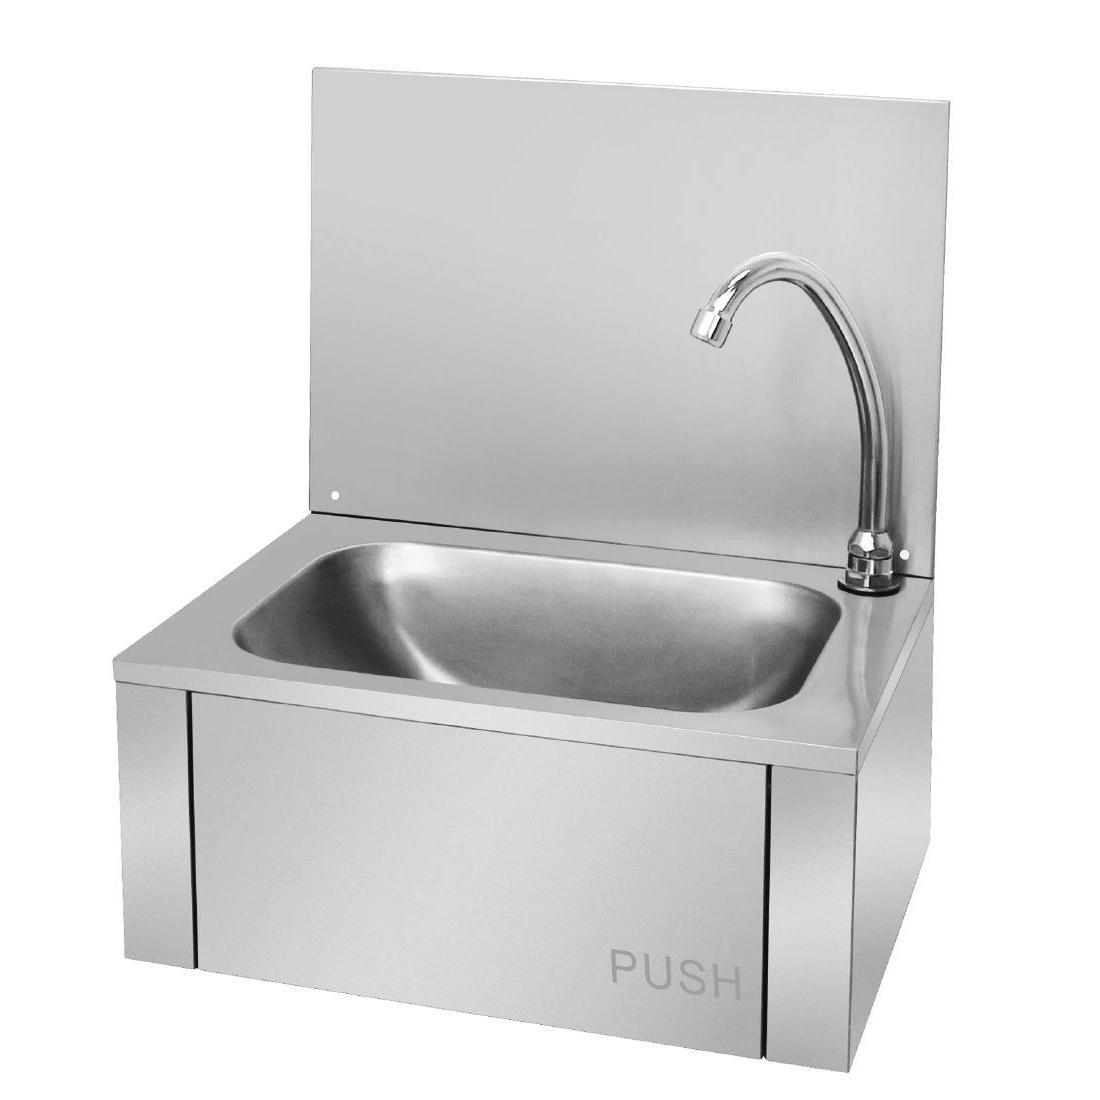 Vogue Stainless Steel Knee Operated Sink - Each - GL280